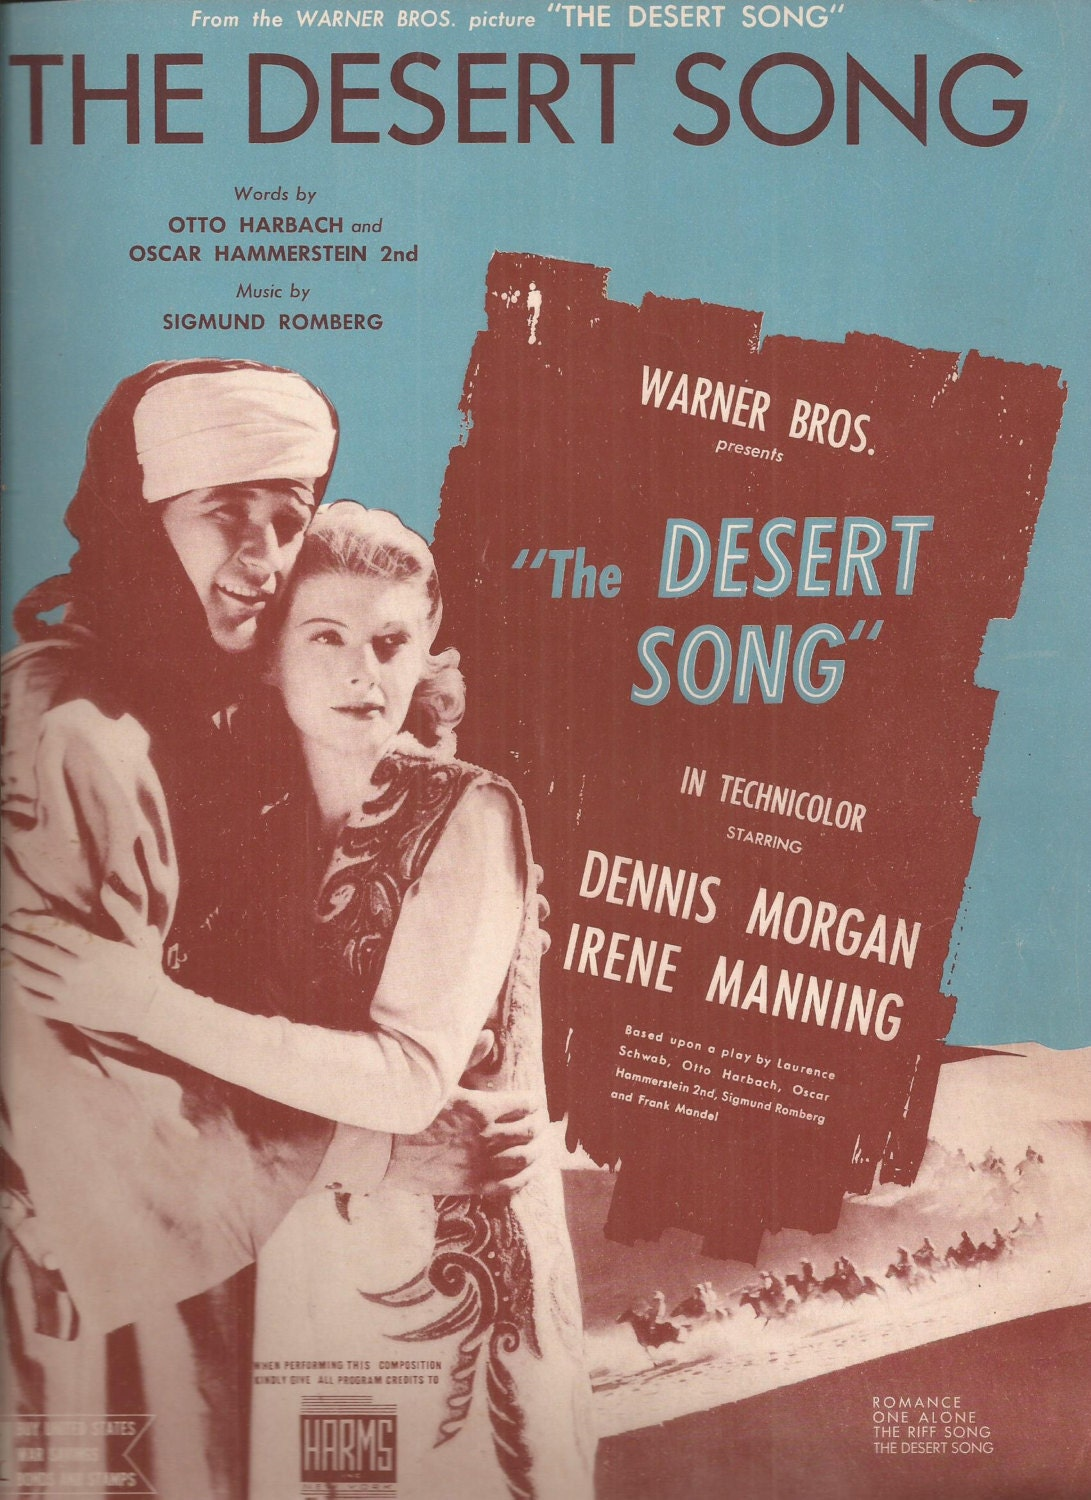 song associated with any desert